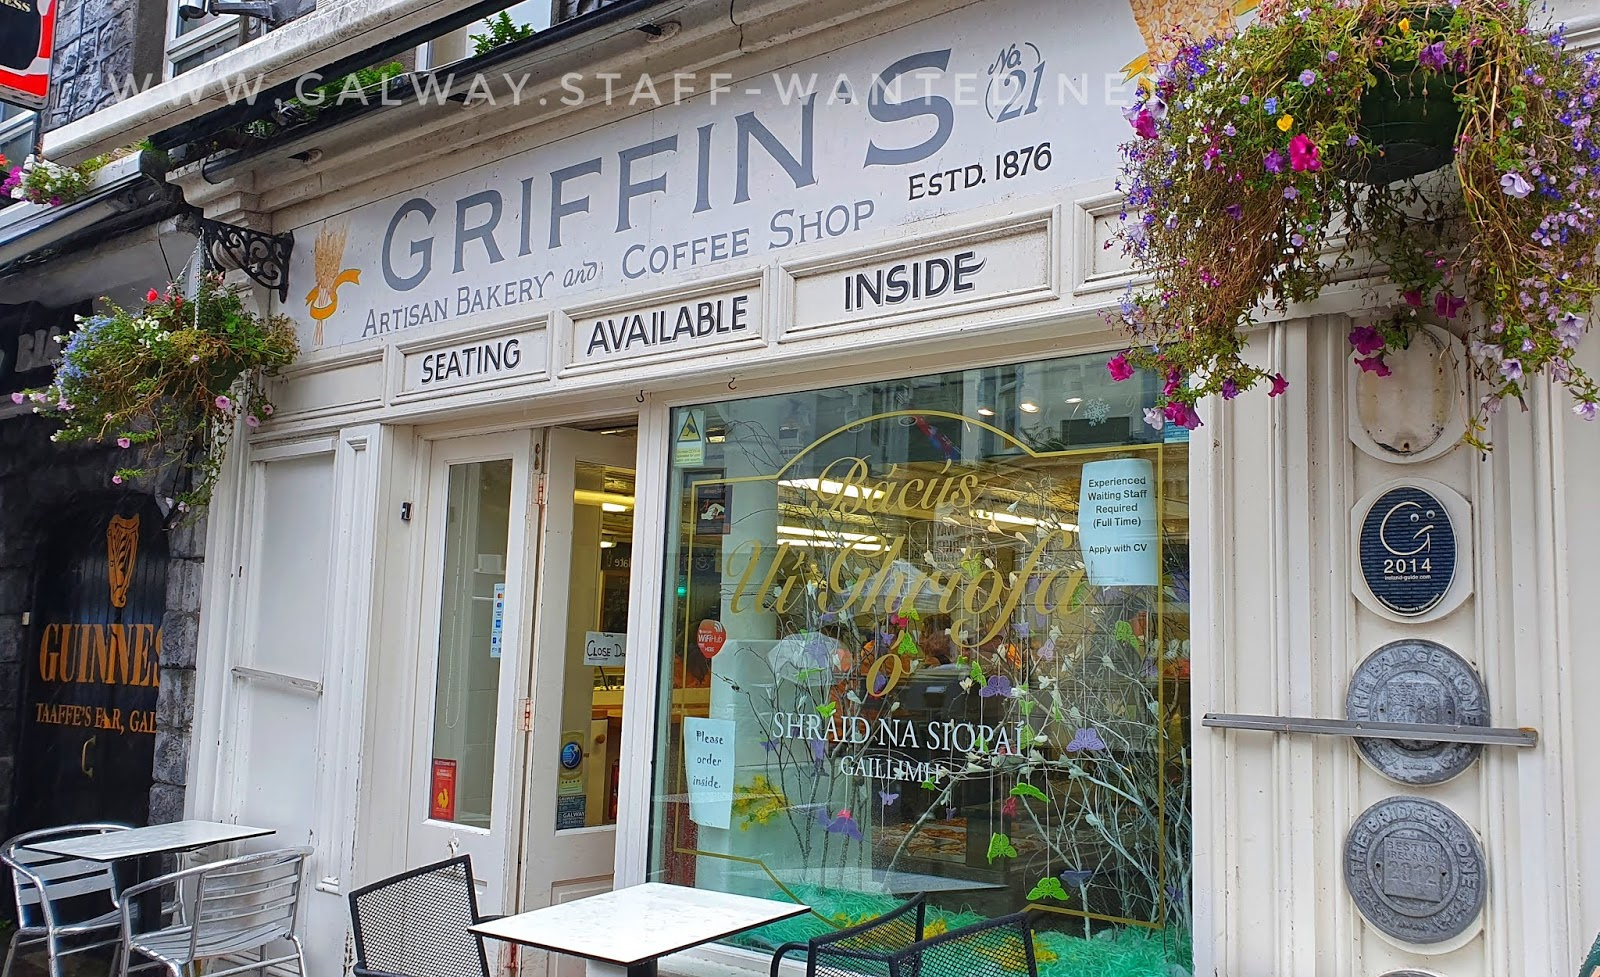 Griffins artisan bakery and coffee shop front, with outdoor tables and hanging floral decoations, and the side door of Takffes pub in the background.